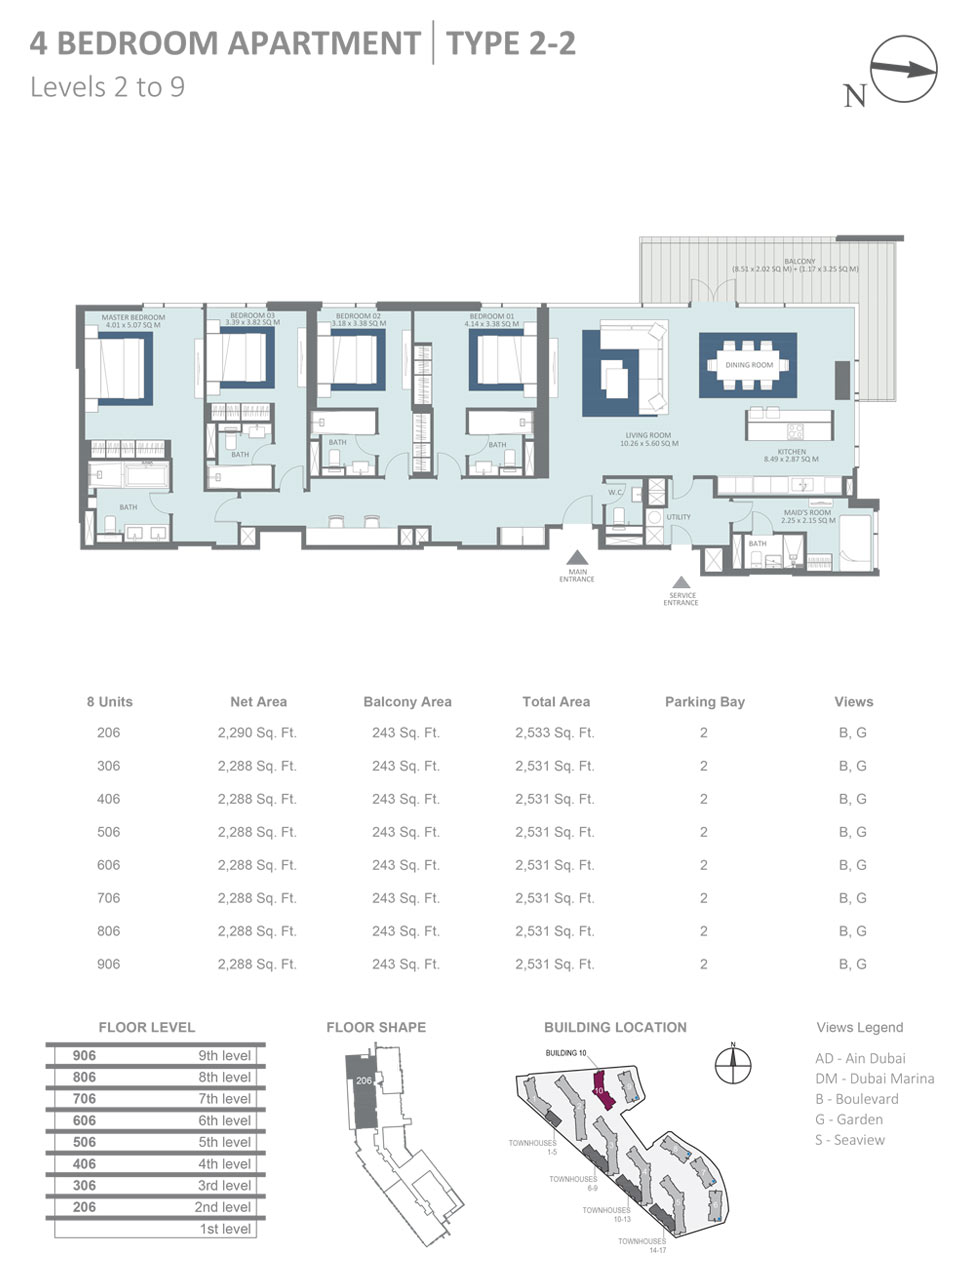 Building 10 - 4 Bedroom Apartment Type 2 - 2, Level 2 - 9, Size 2533  sq. ft.